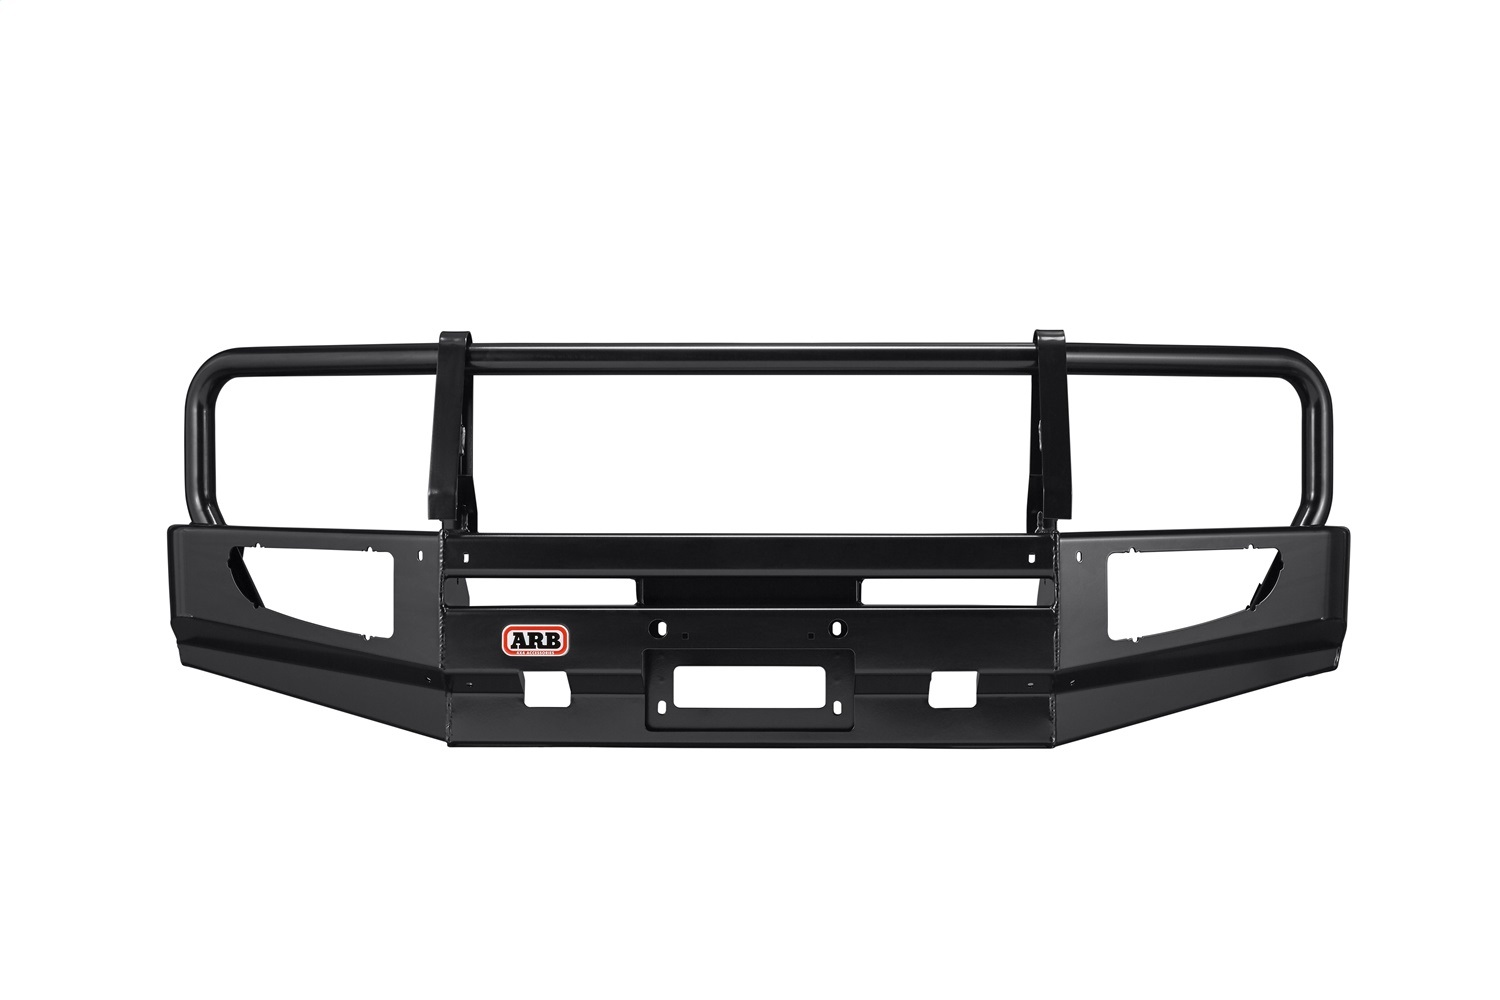 ARB 4x4 Accessories 3421530 Front Deluxe Bull Bar Winch Mount Bumper